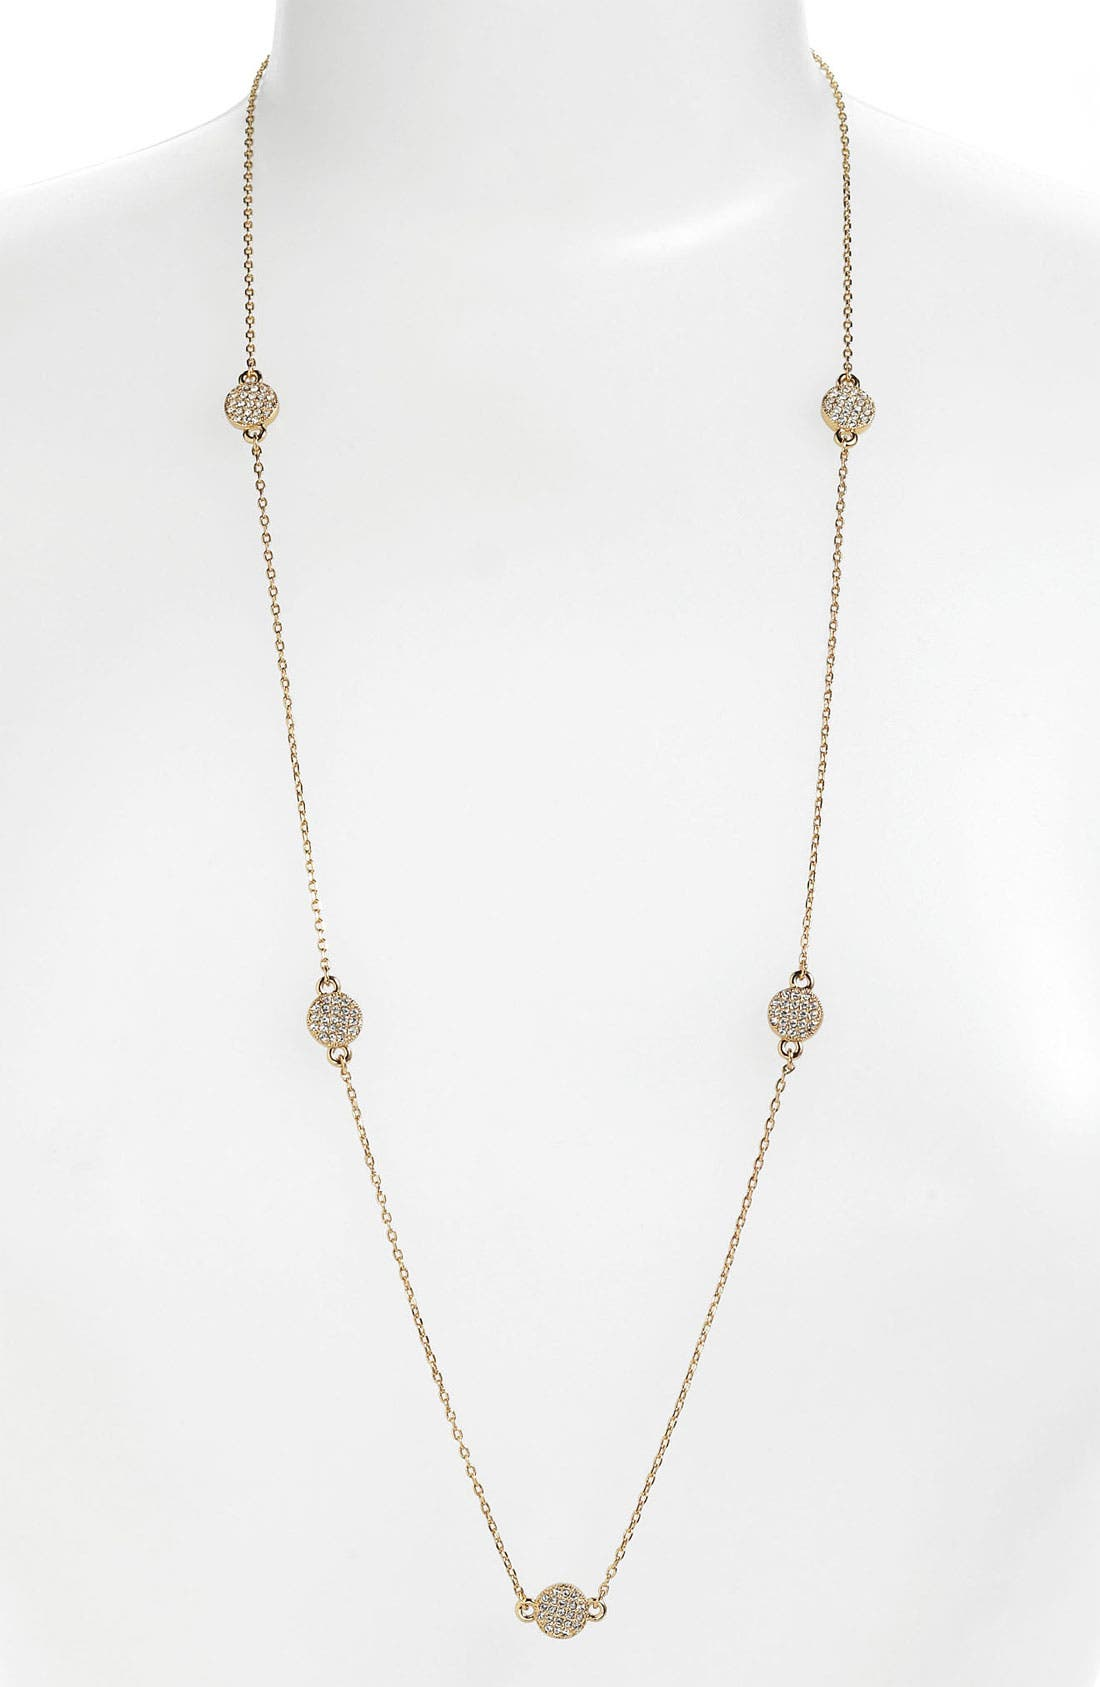 Alternate Image 1 Selected - kate spade new york 'bright spot' long station necklace